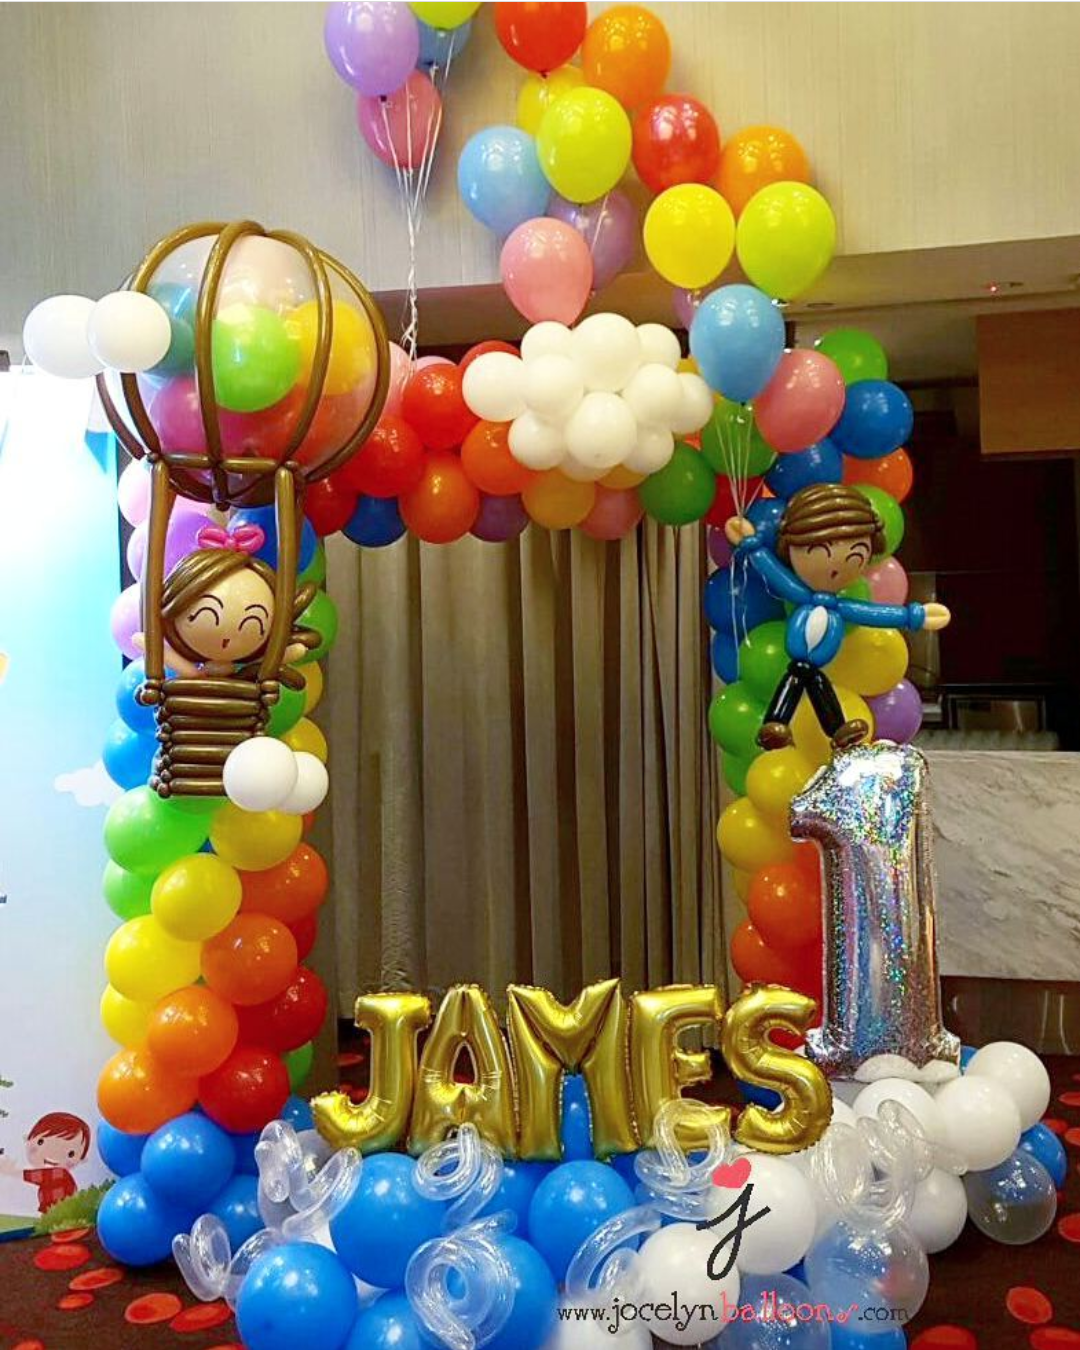 , A very unique rainbow balloon backdrop phtoobooth by Jocelyn Balloons!, Singapore Balloon Decoration Services - Balloon Workshop and Balloon Sculpting